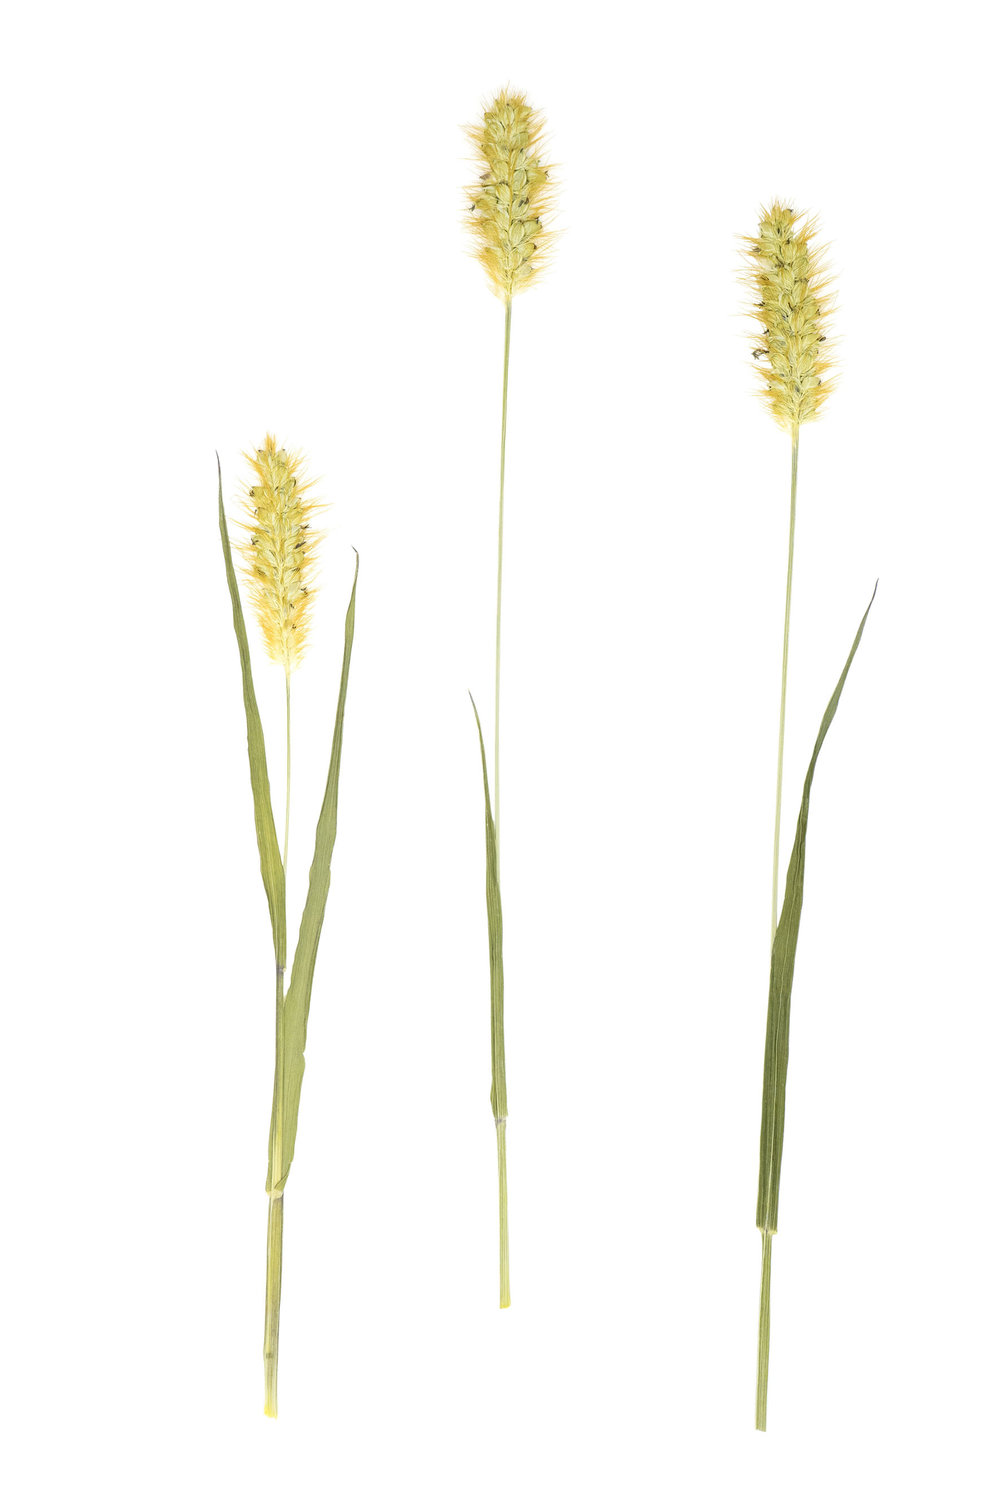 New! Setaria pumila / Yellow Foxtail